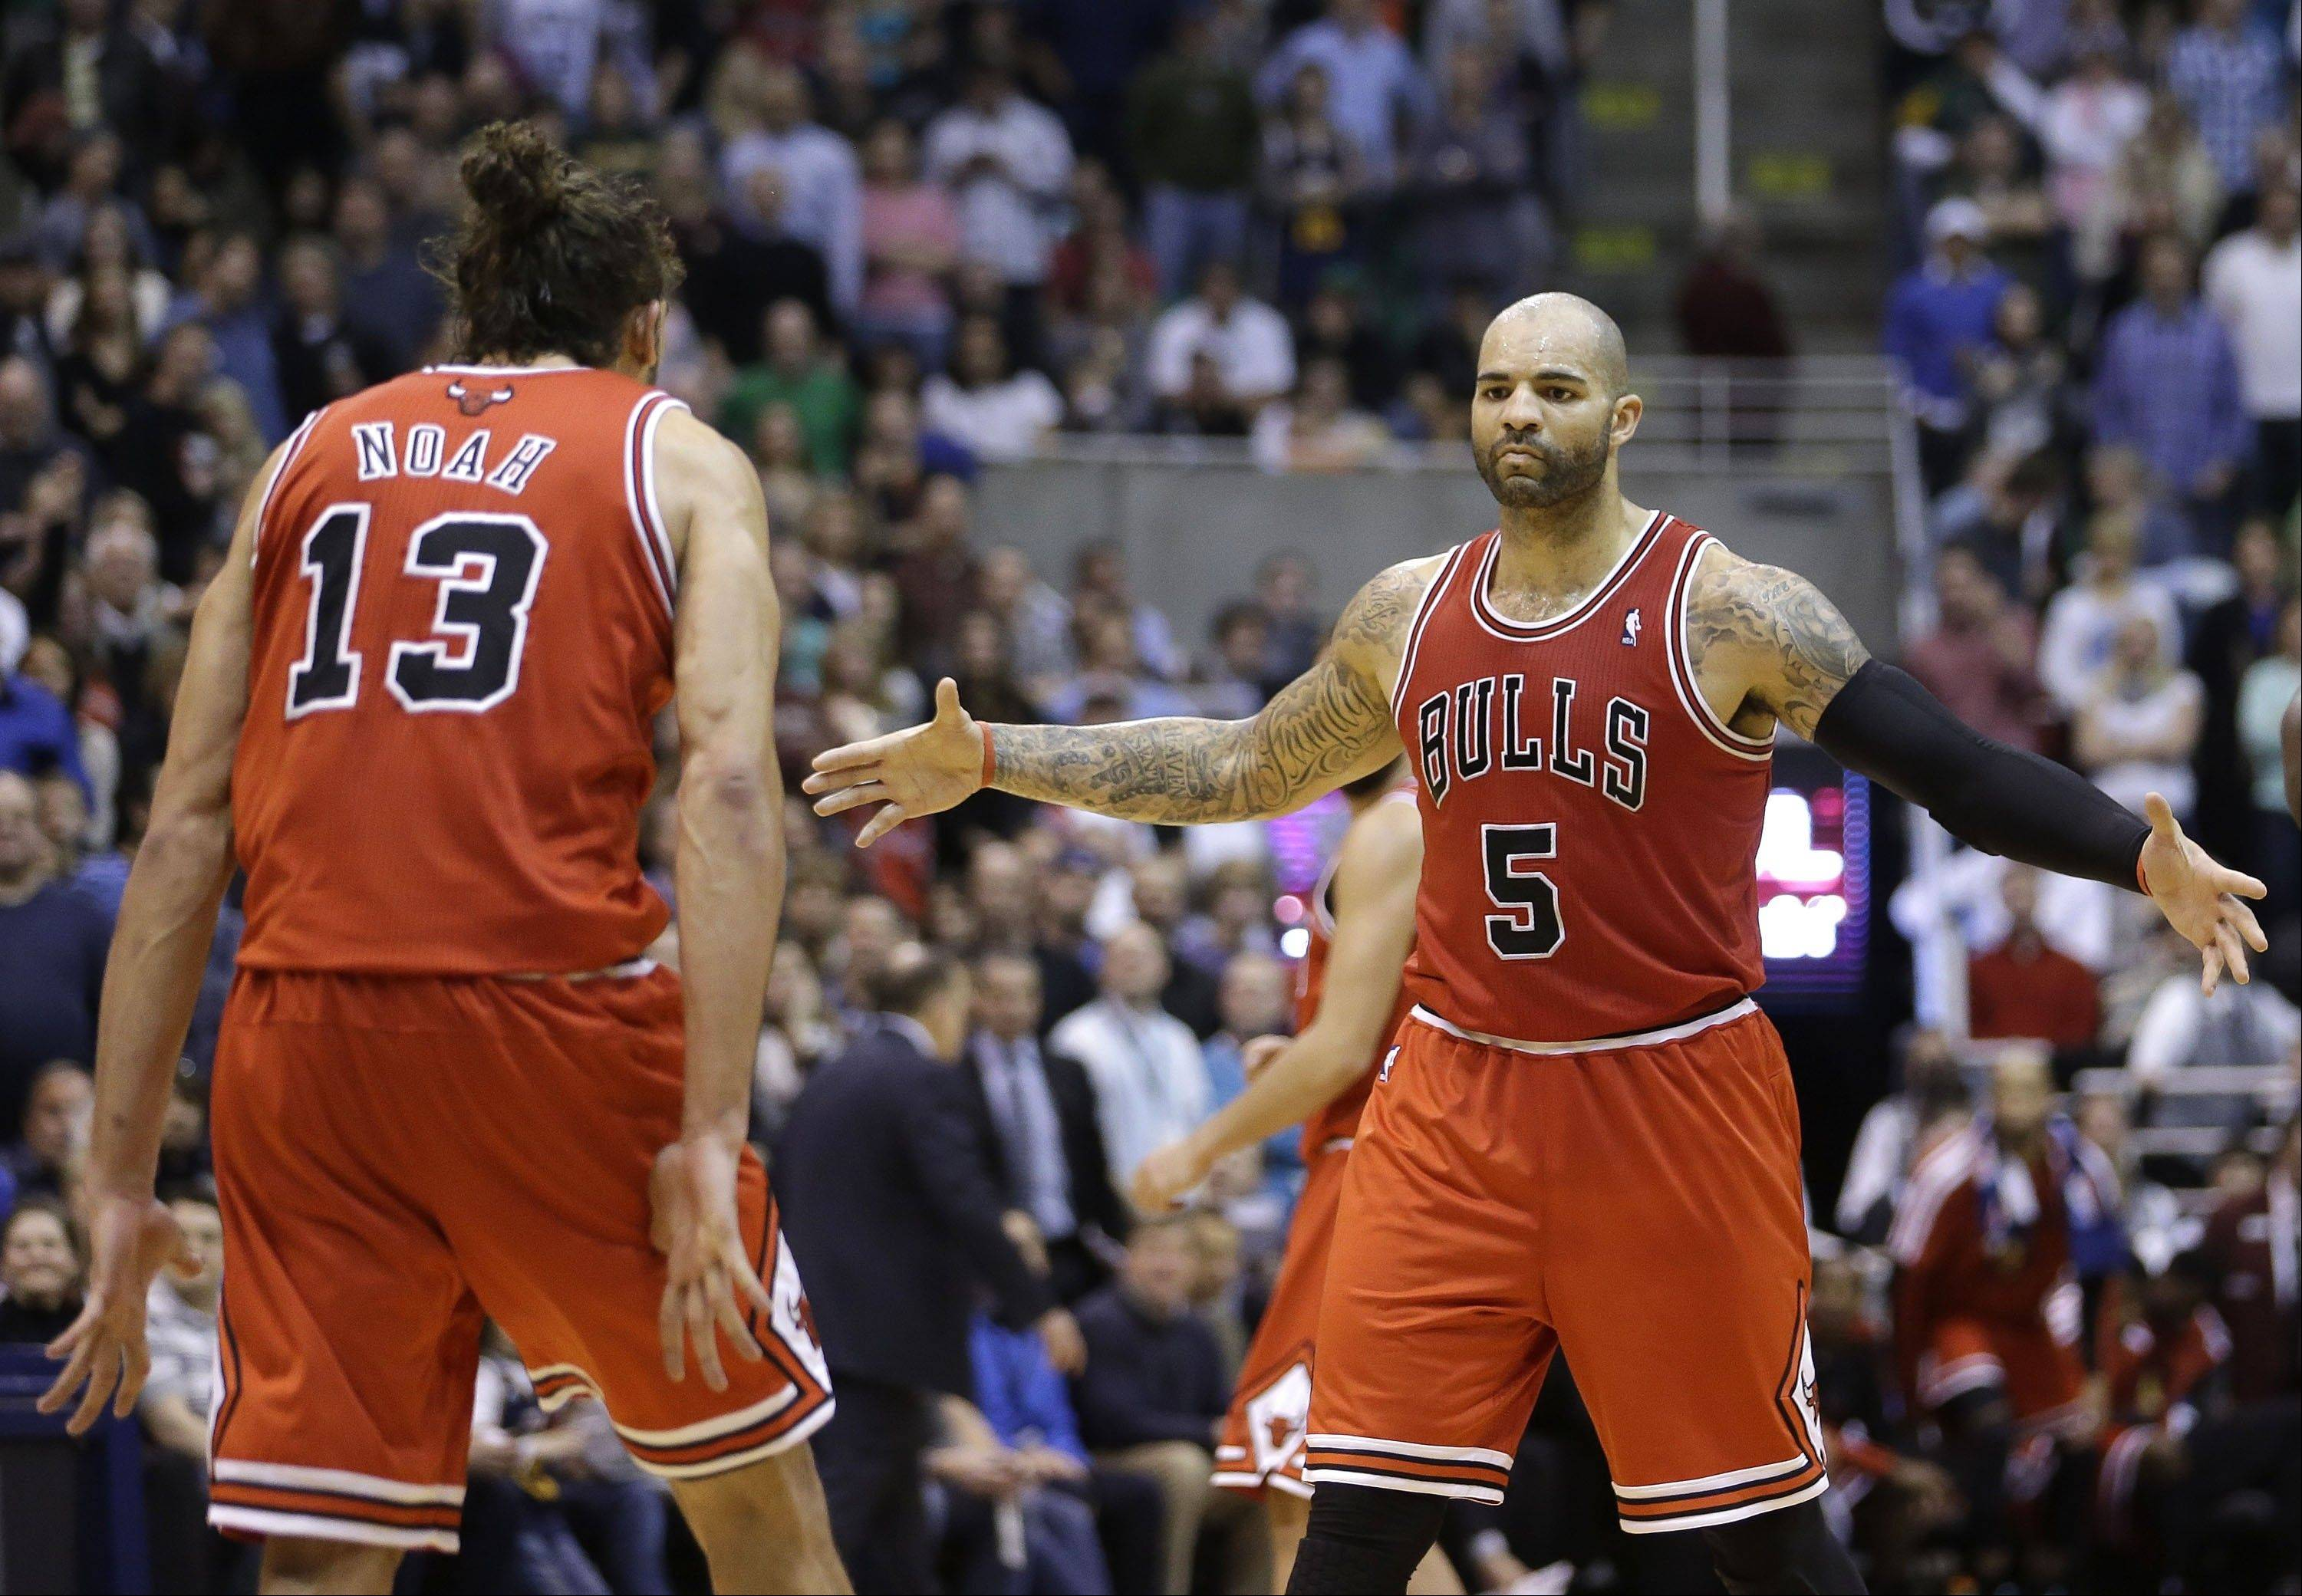 Joakim Noah (13) and Carlos Boozer celebrate in the fourth quarter of the Bulls' victory Friday night in Utah. Boozer scored 11 of his 19 points in the last five minutes.